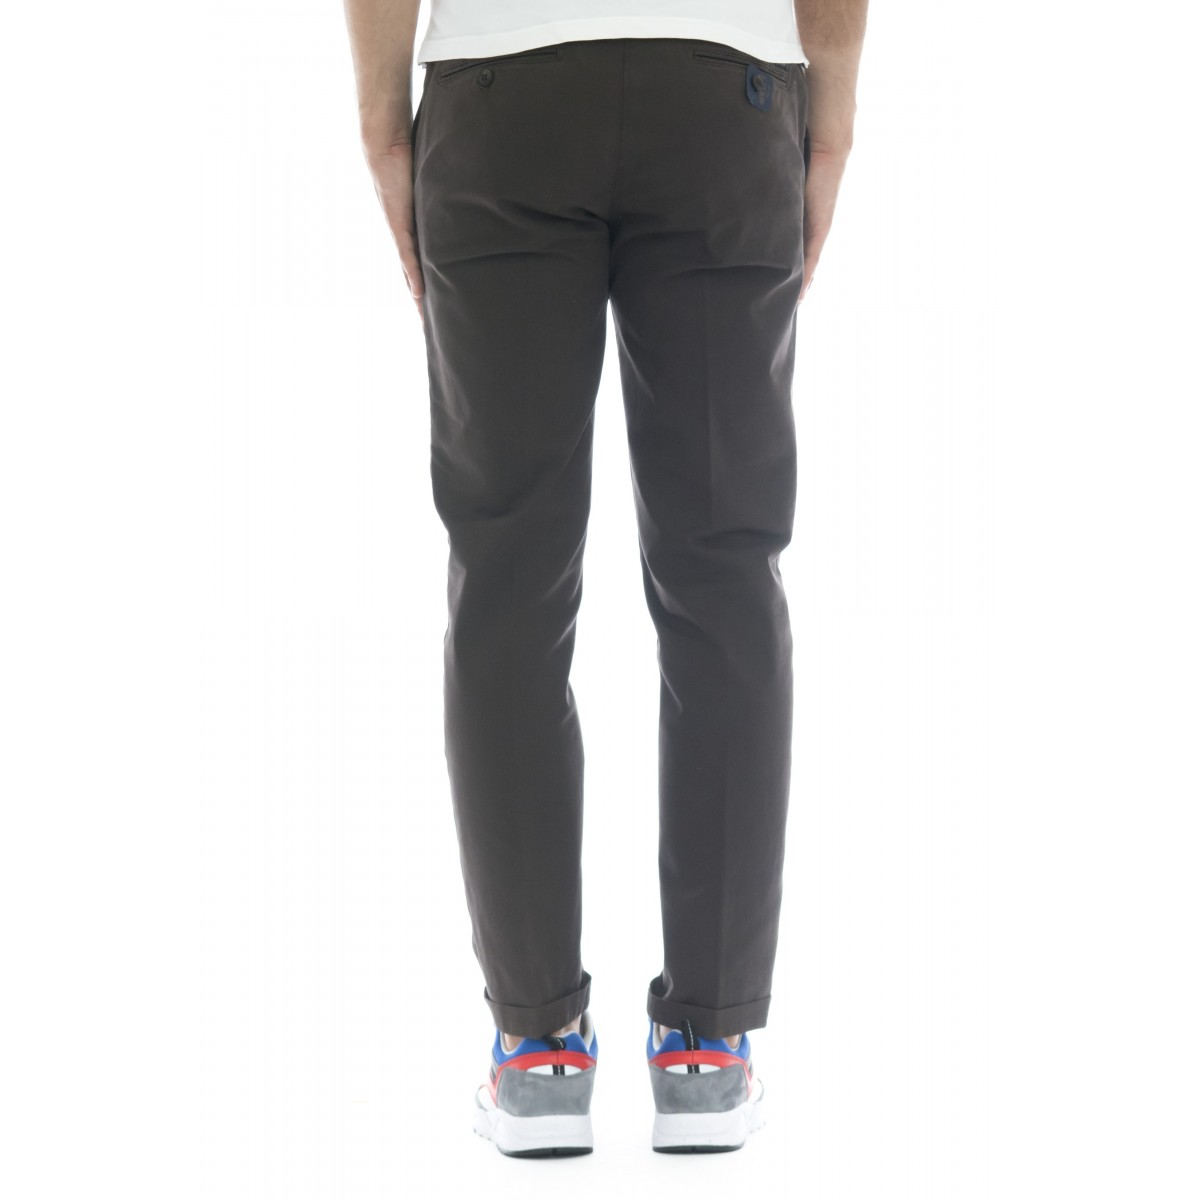 Pantalone uomo - Billy 4592